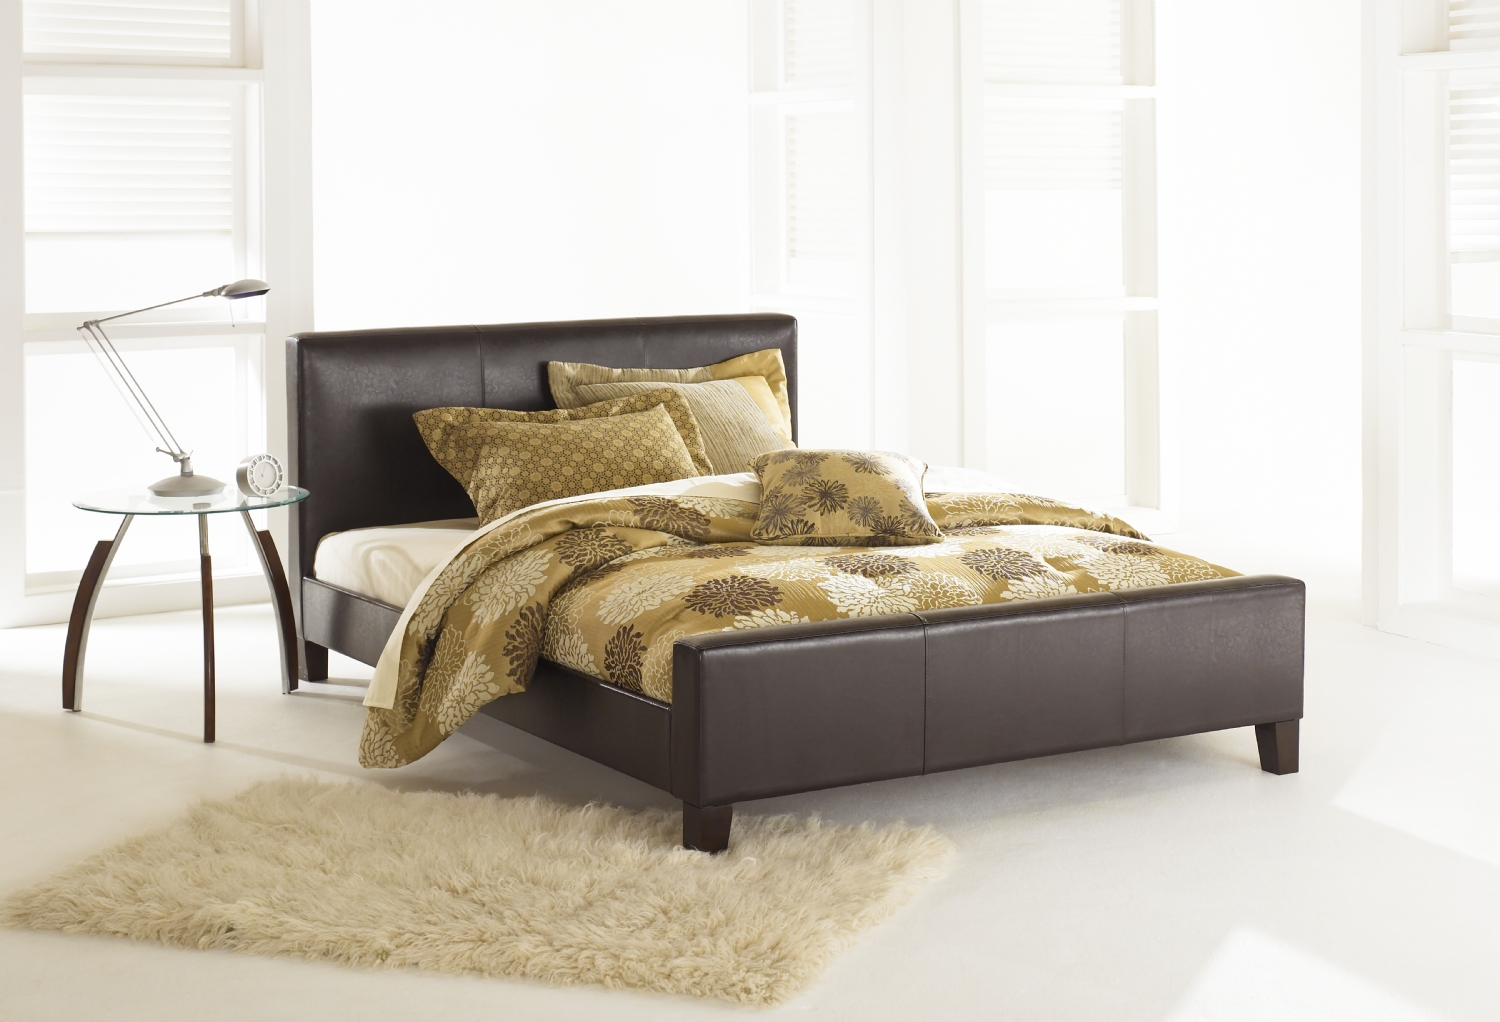 Why You Should Choose Platform Bed Frames Home Decor With Collection Of Interior Design